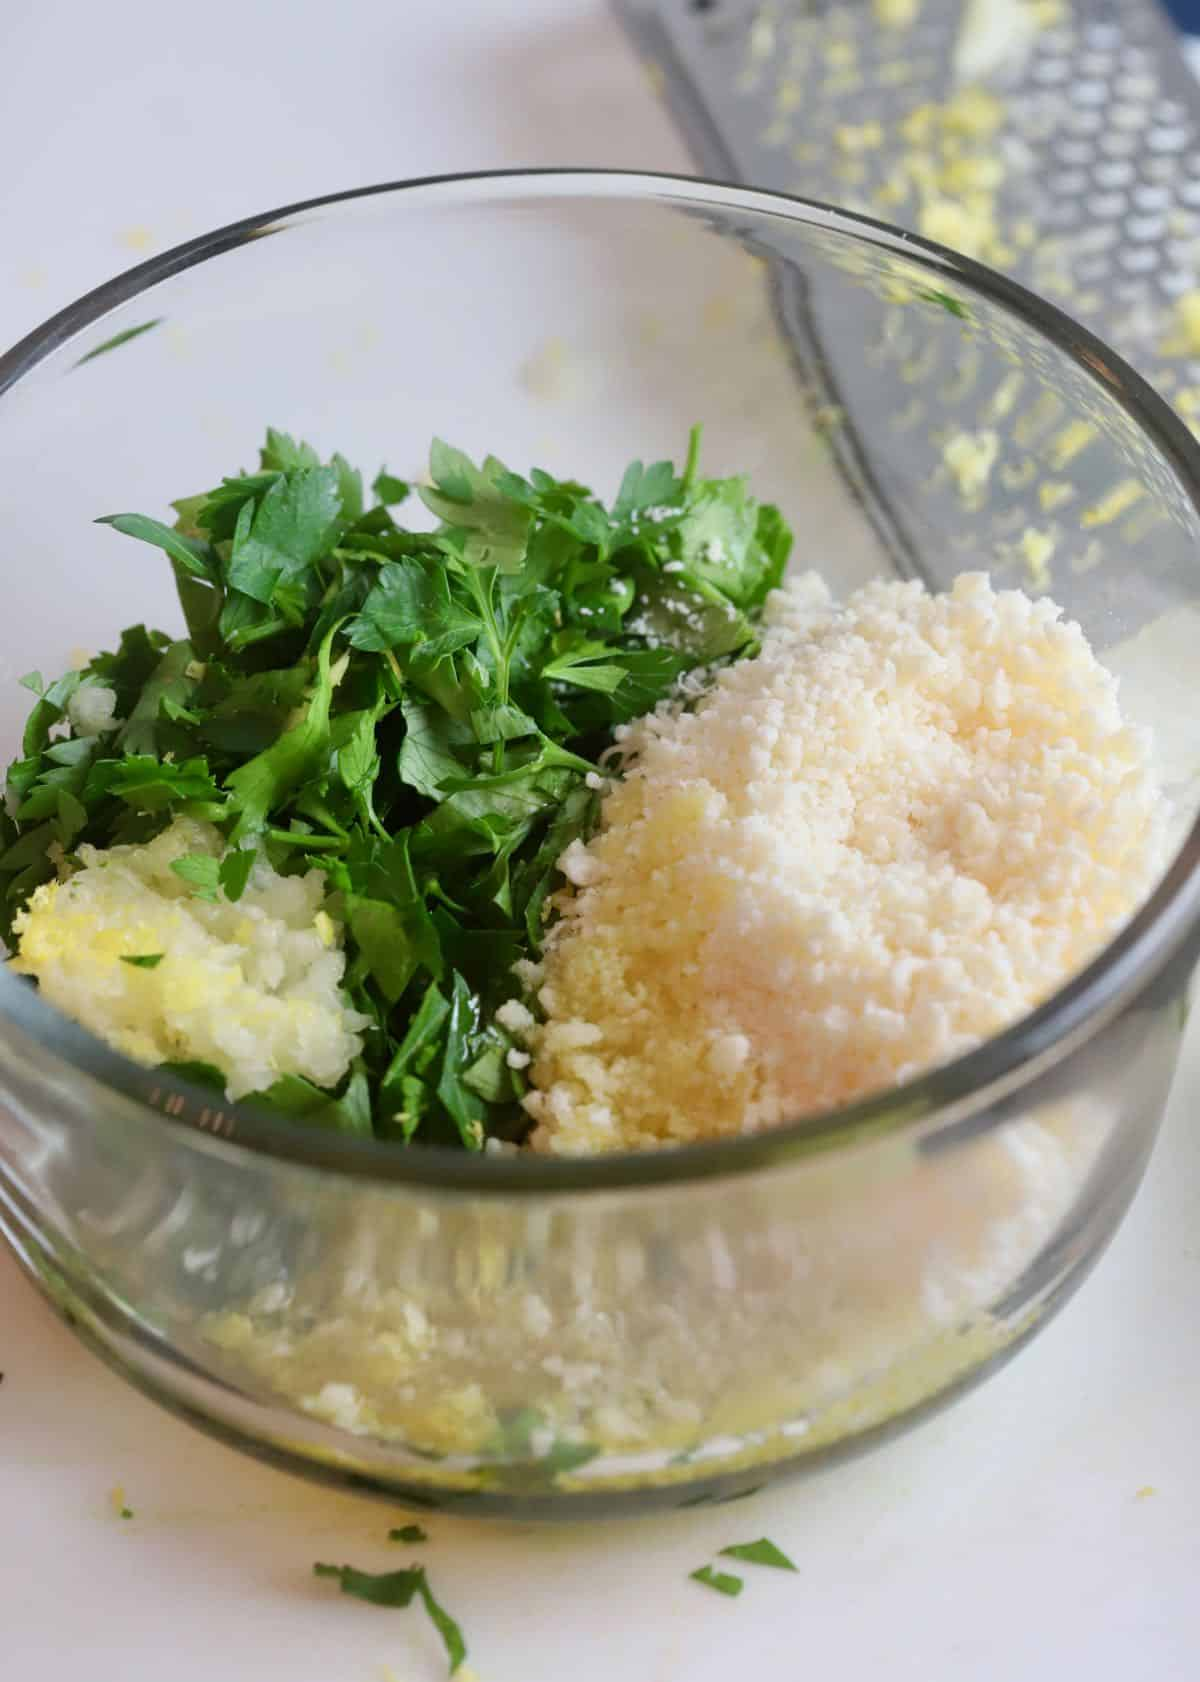 Gremolata ingredients in a bowl including lemon zest and parsley.